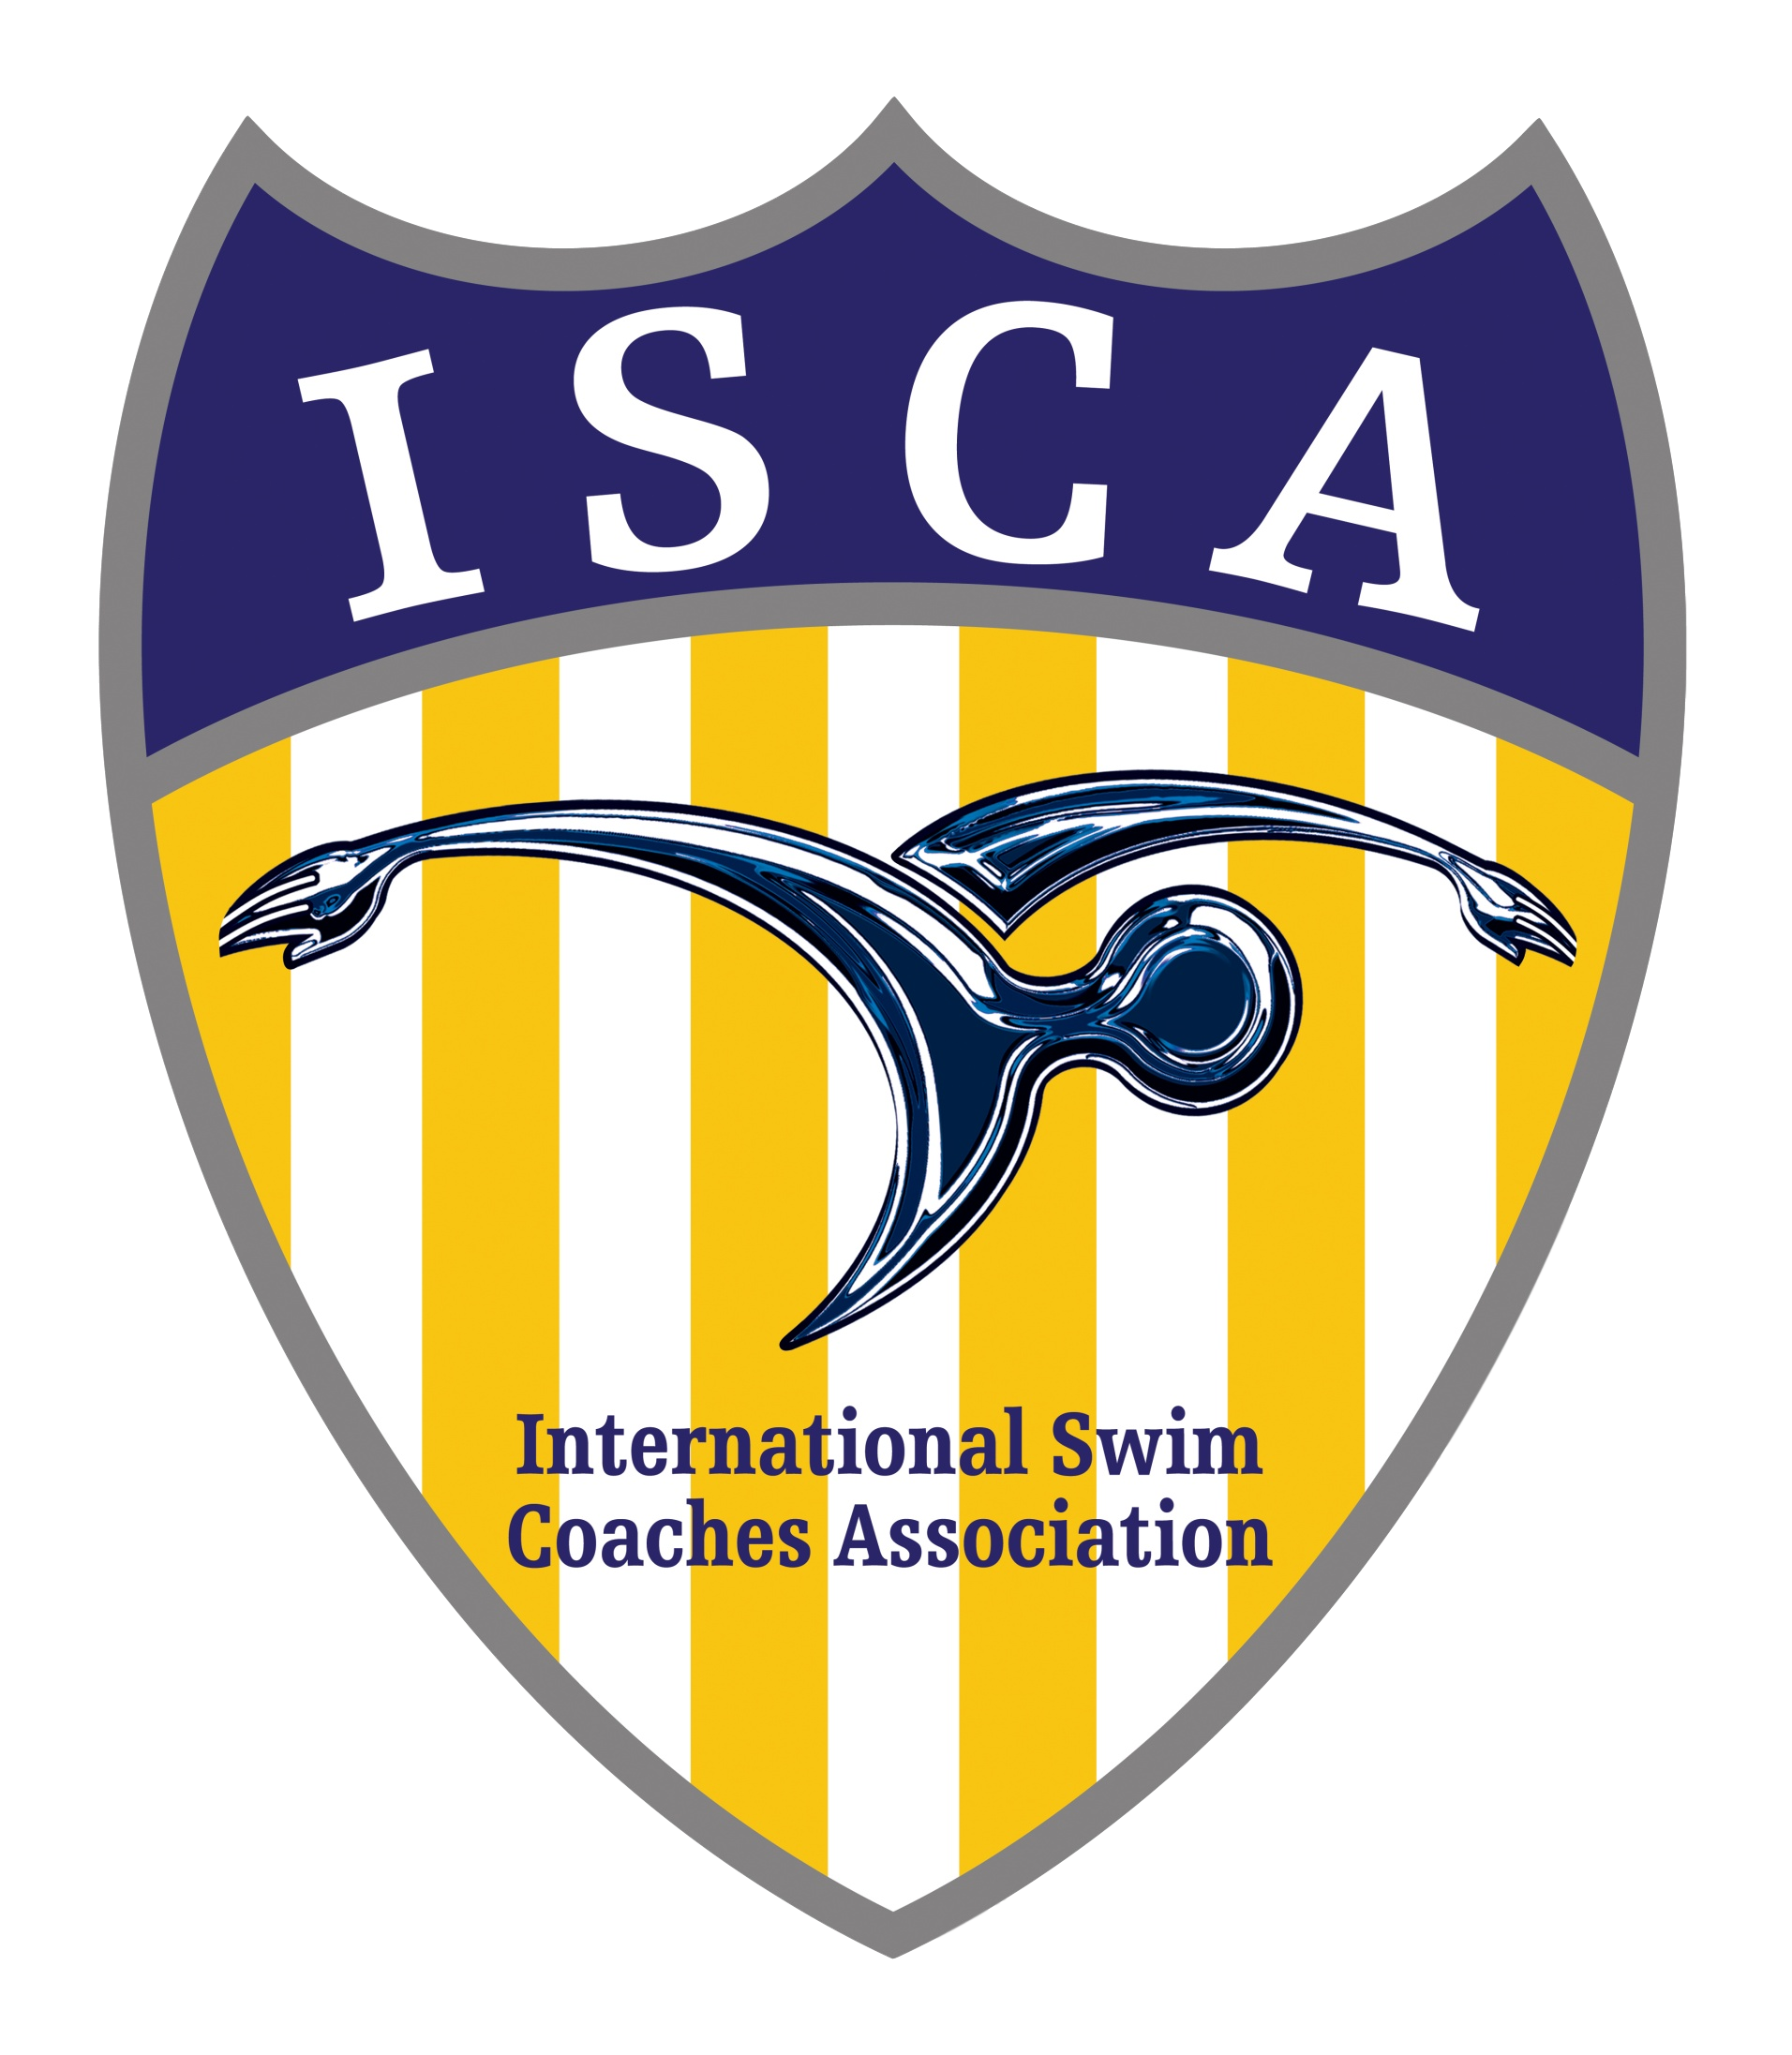 ISCA logo - best